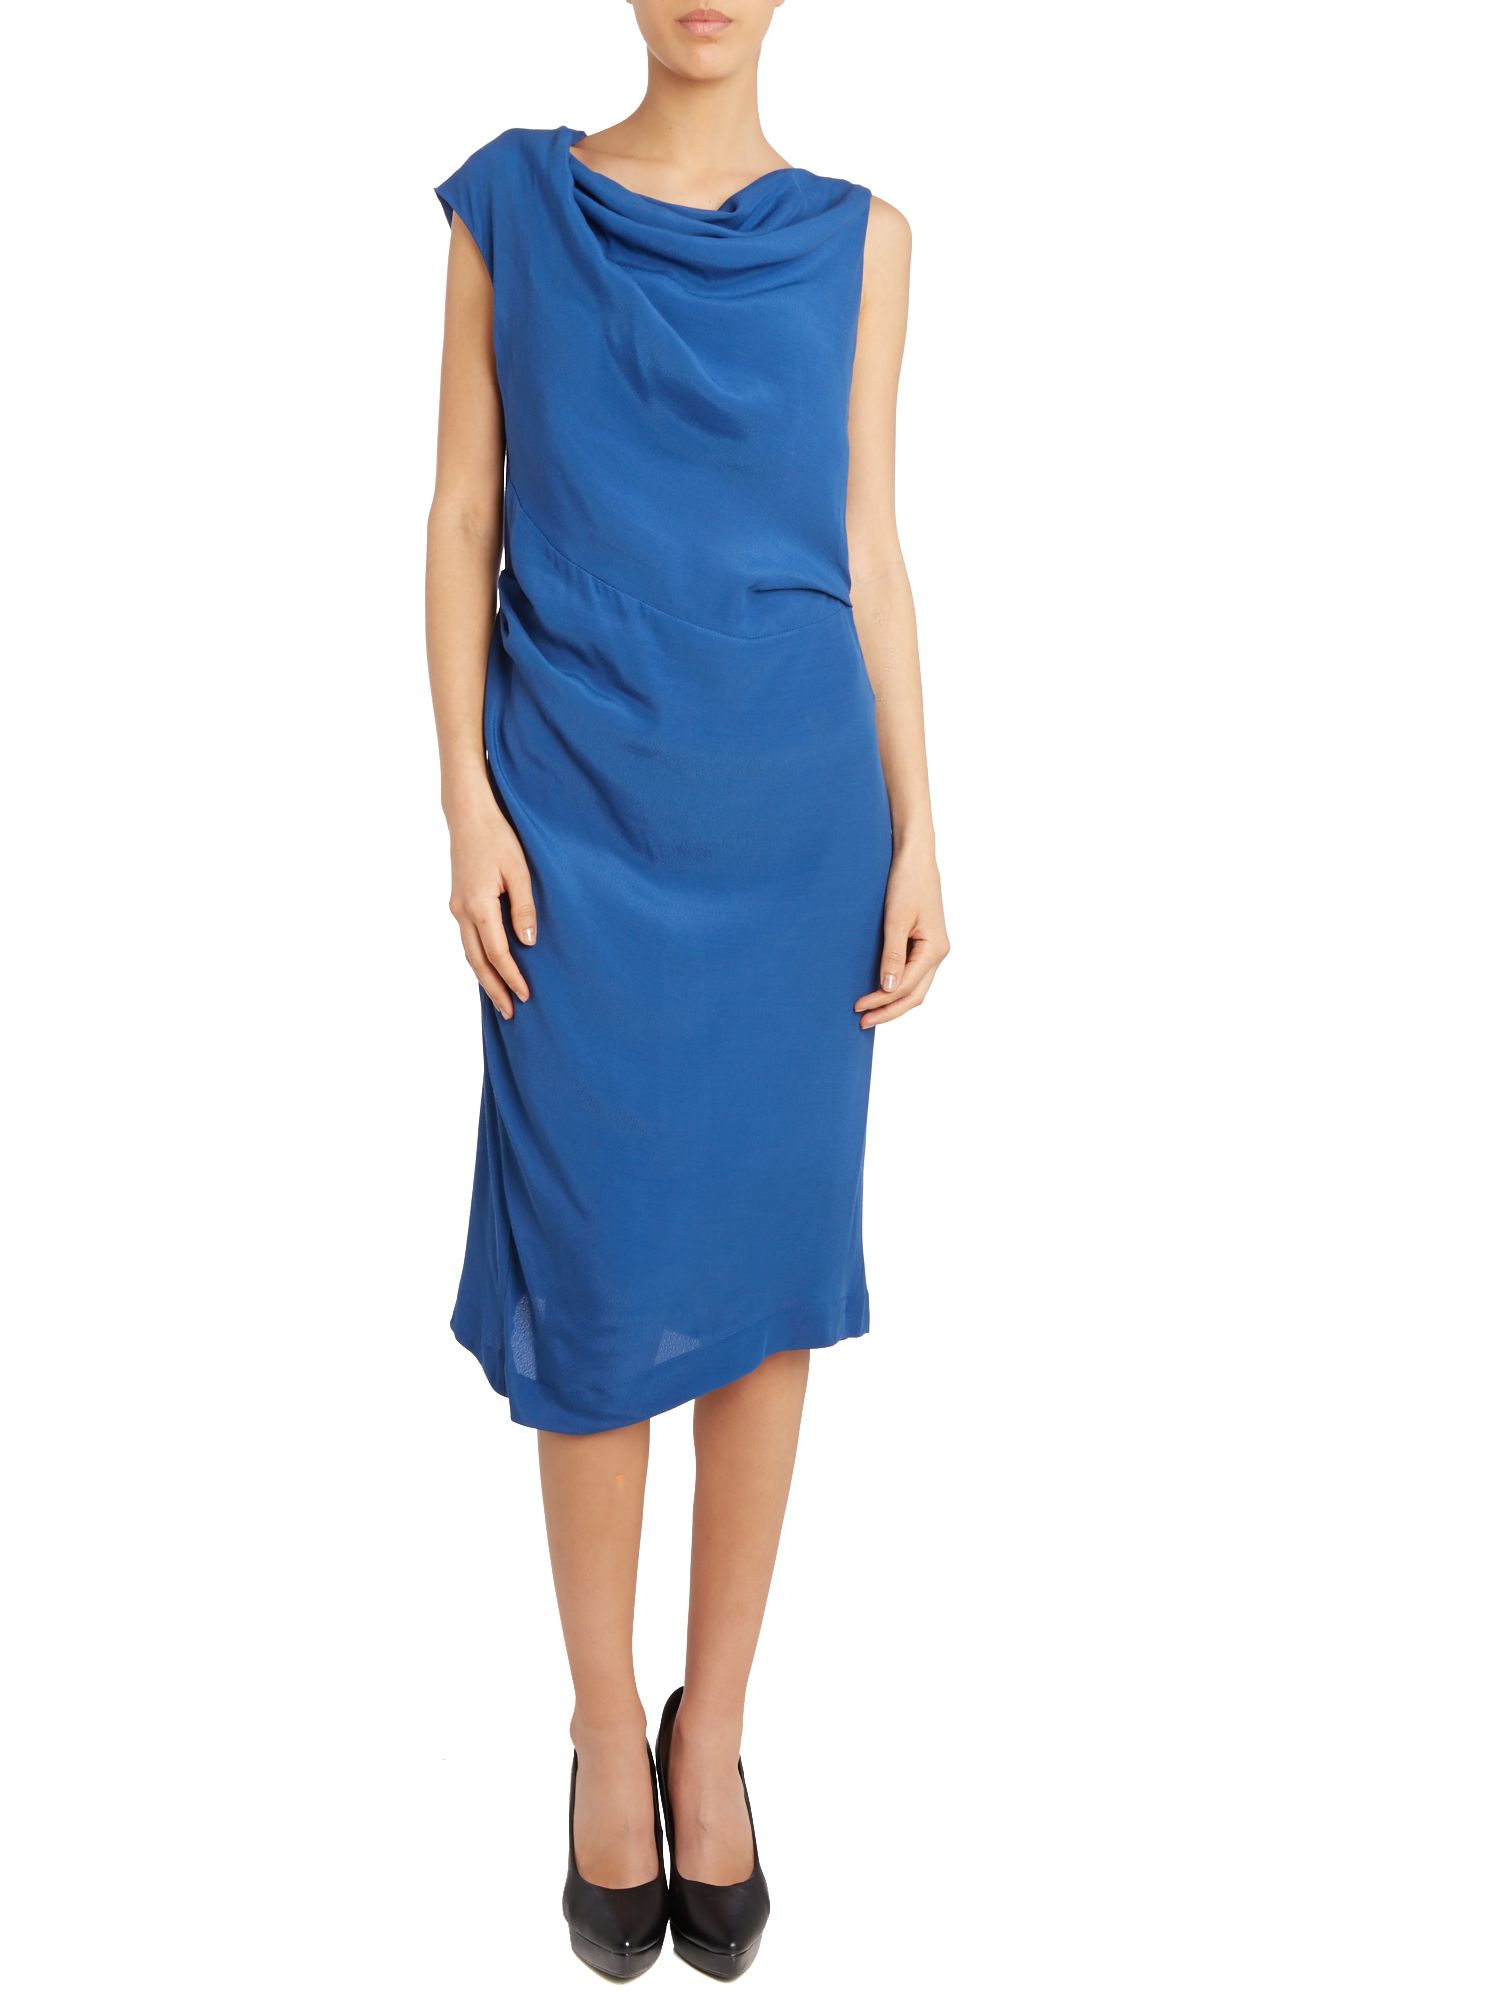 Sleeveless cowl neck alto dress